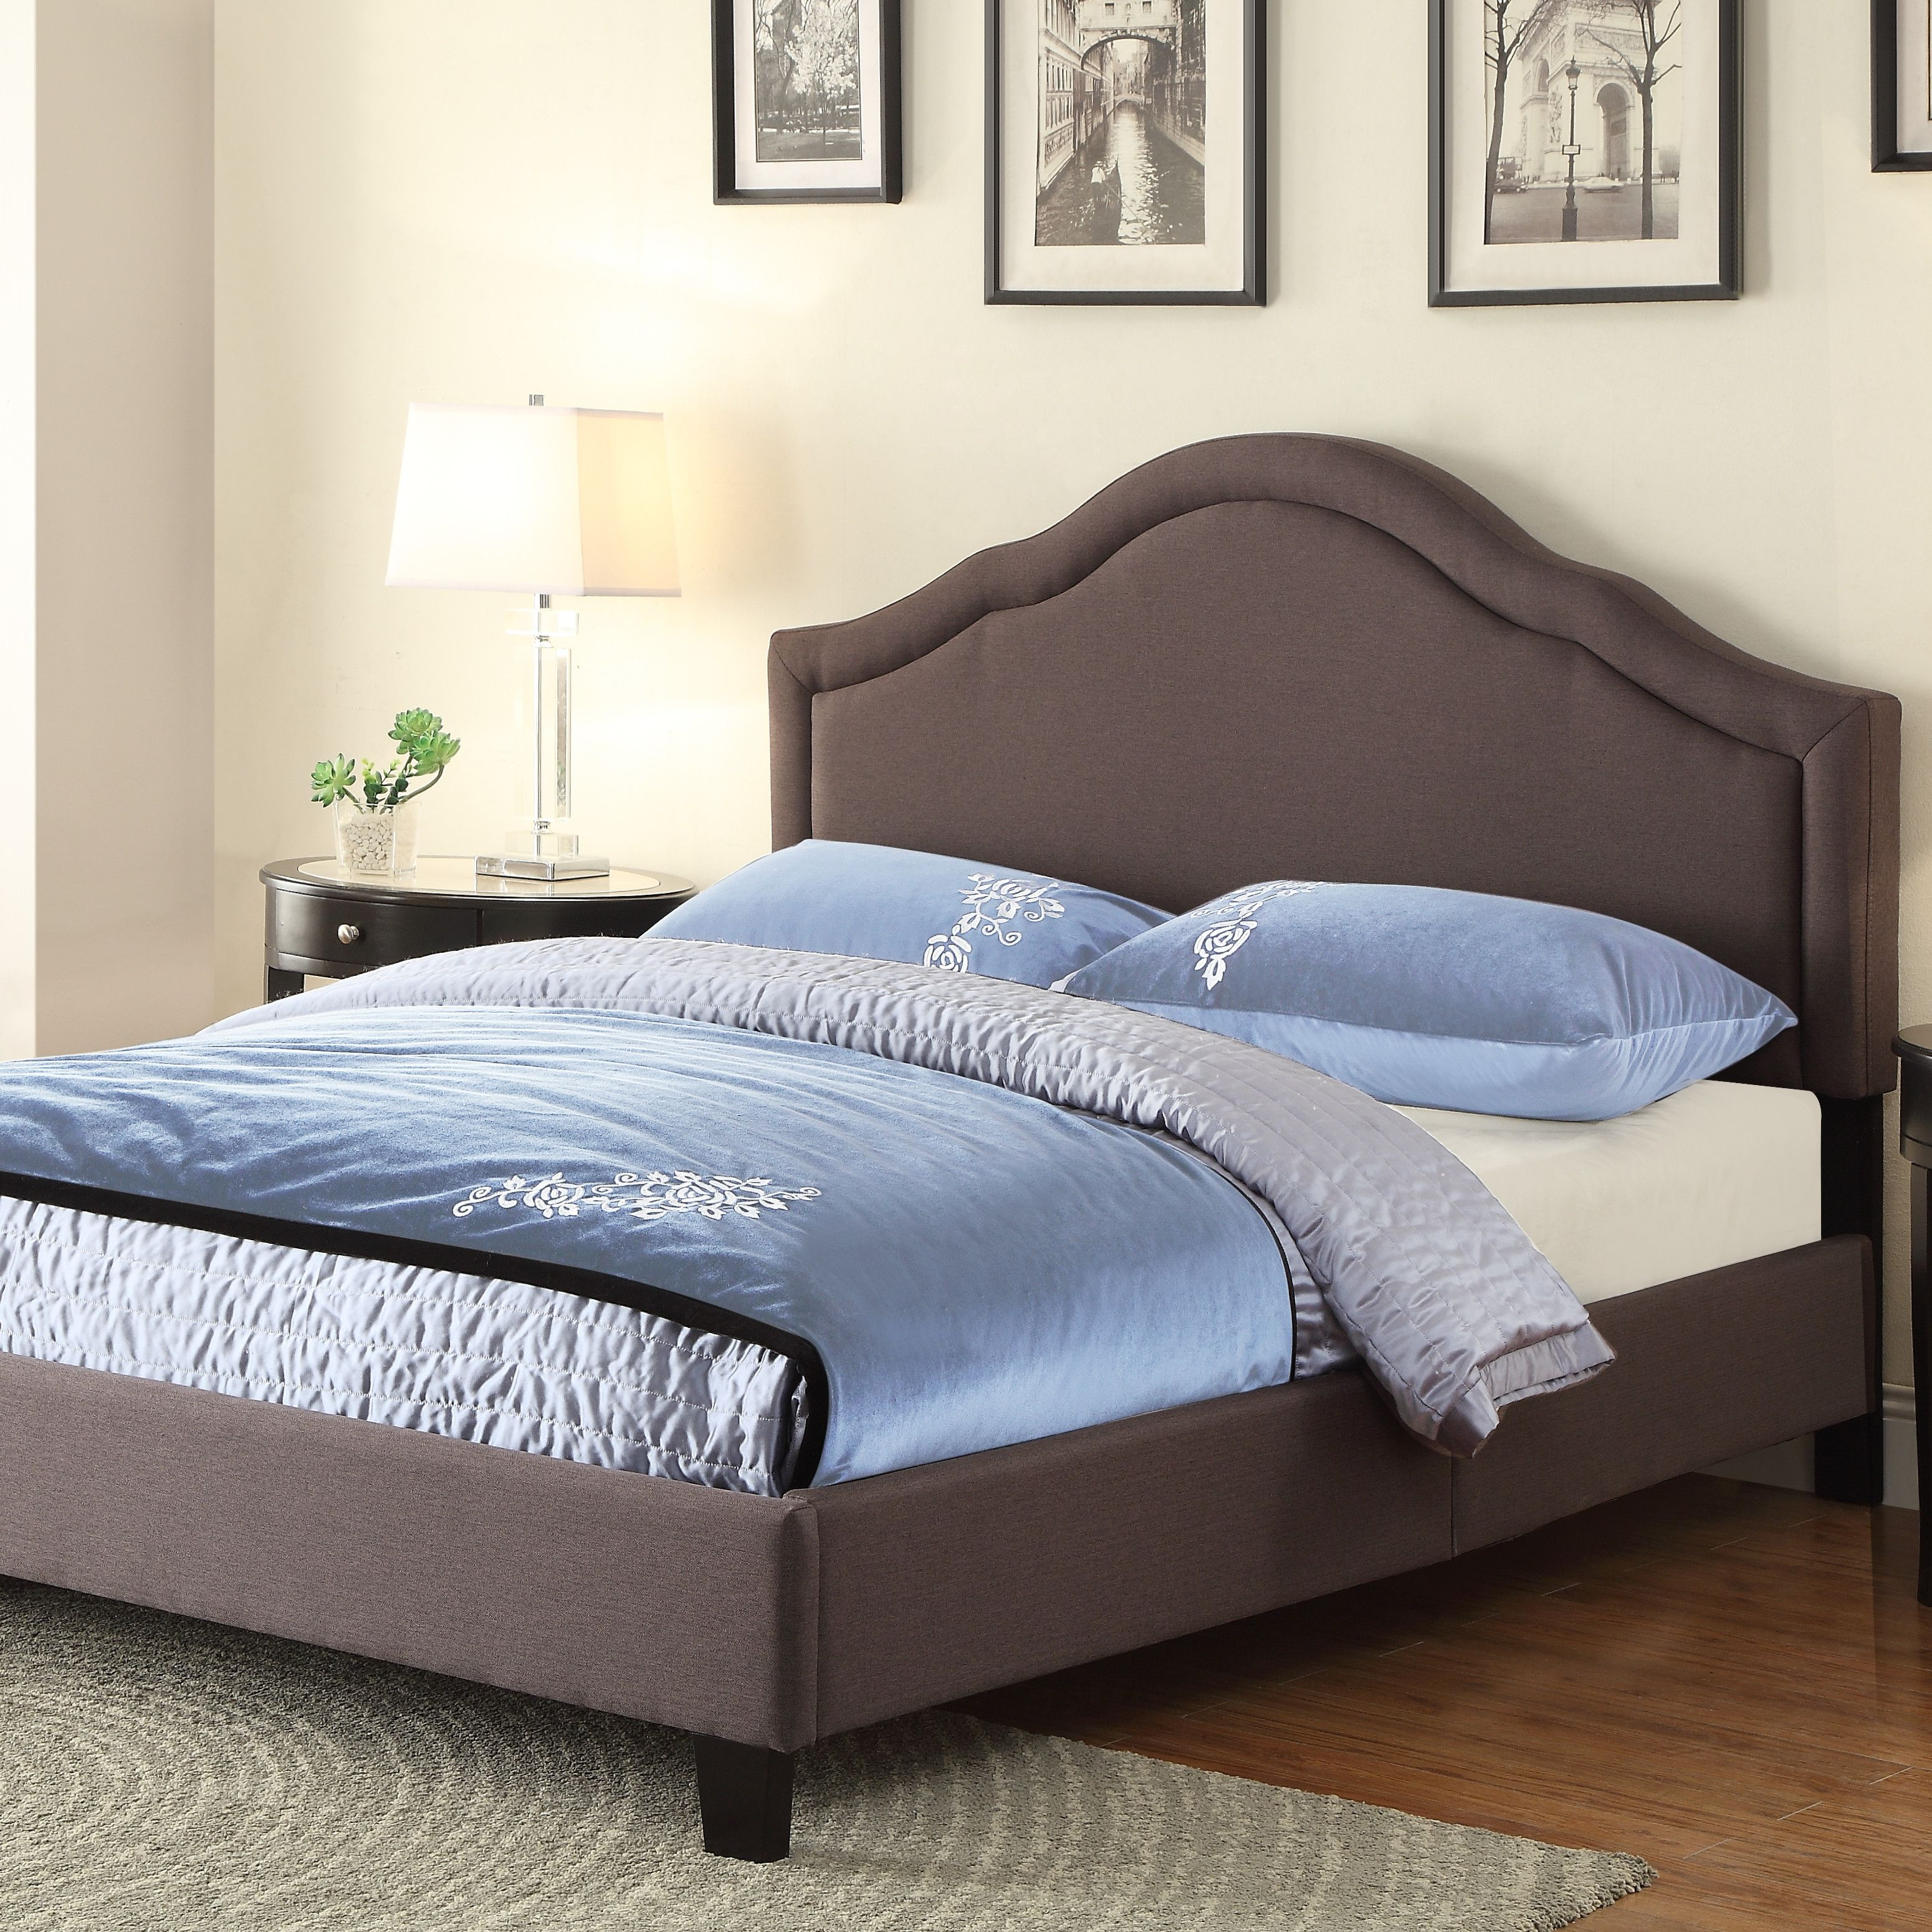 king full size types bed ikea tag assembly all luroy diy liquor beds instructions bedroom of hack tags low platform